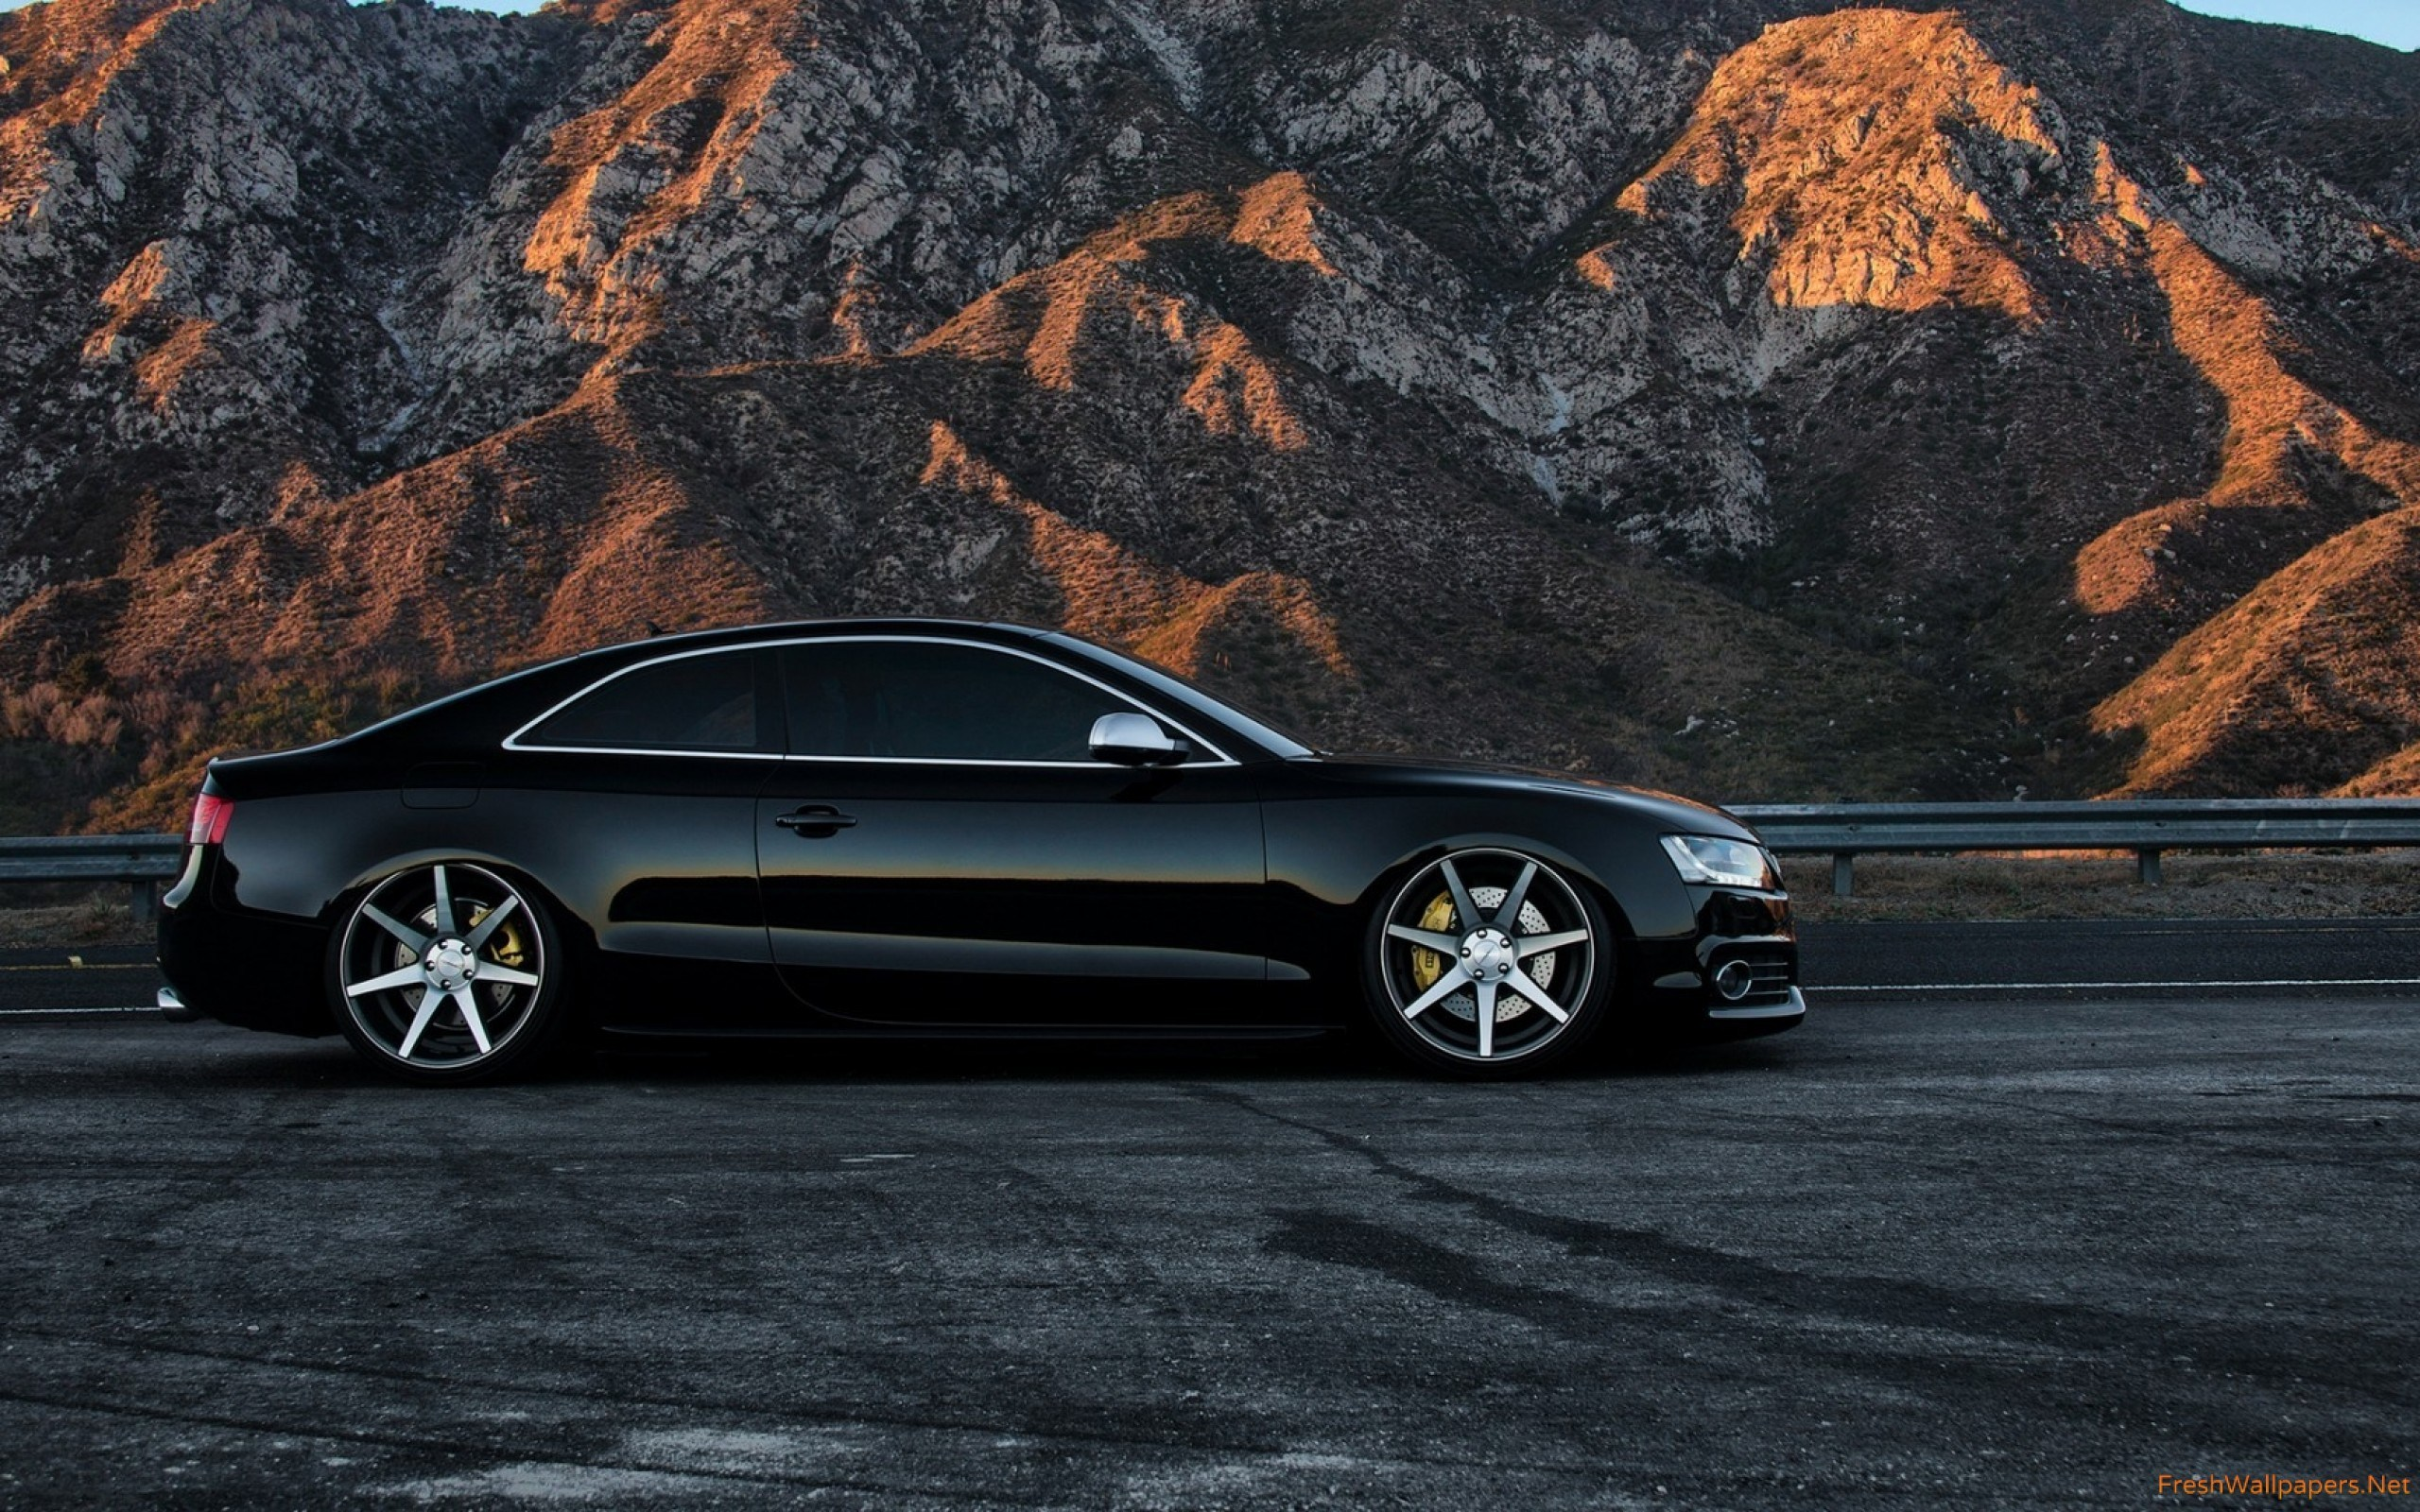 Audi S5 Wallpaper 38 Wallpapers Hd Rs7 Iphone 5 If Ip 2560x1600